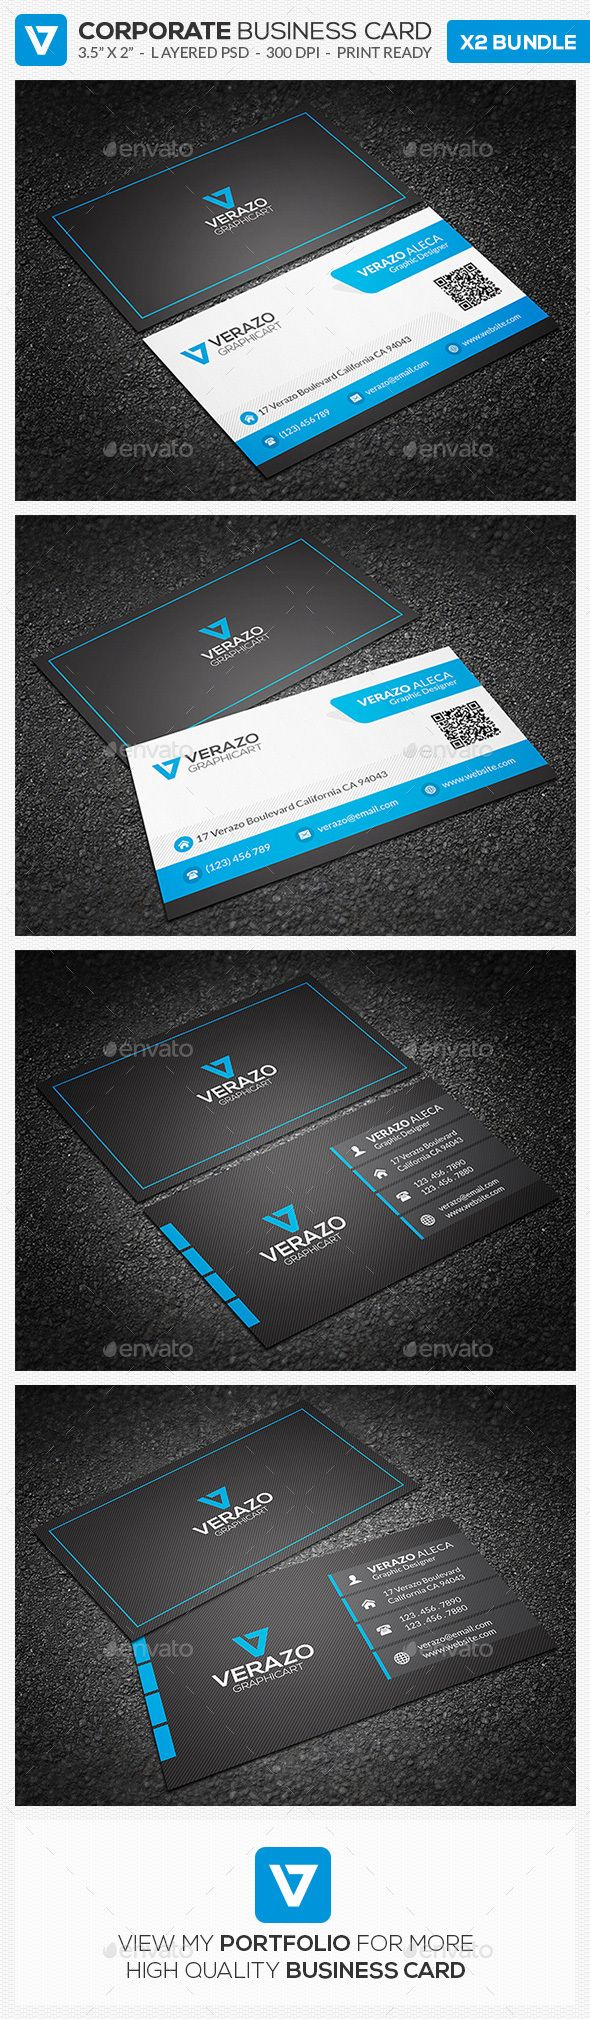 25+ unique High quality business cards ideas on Pinterest | Buy ...